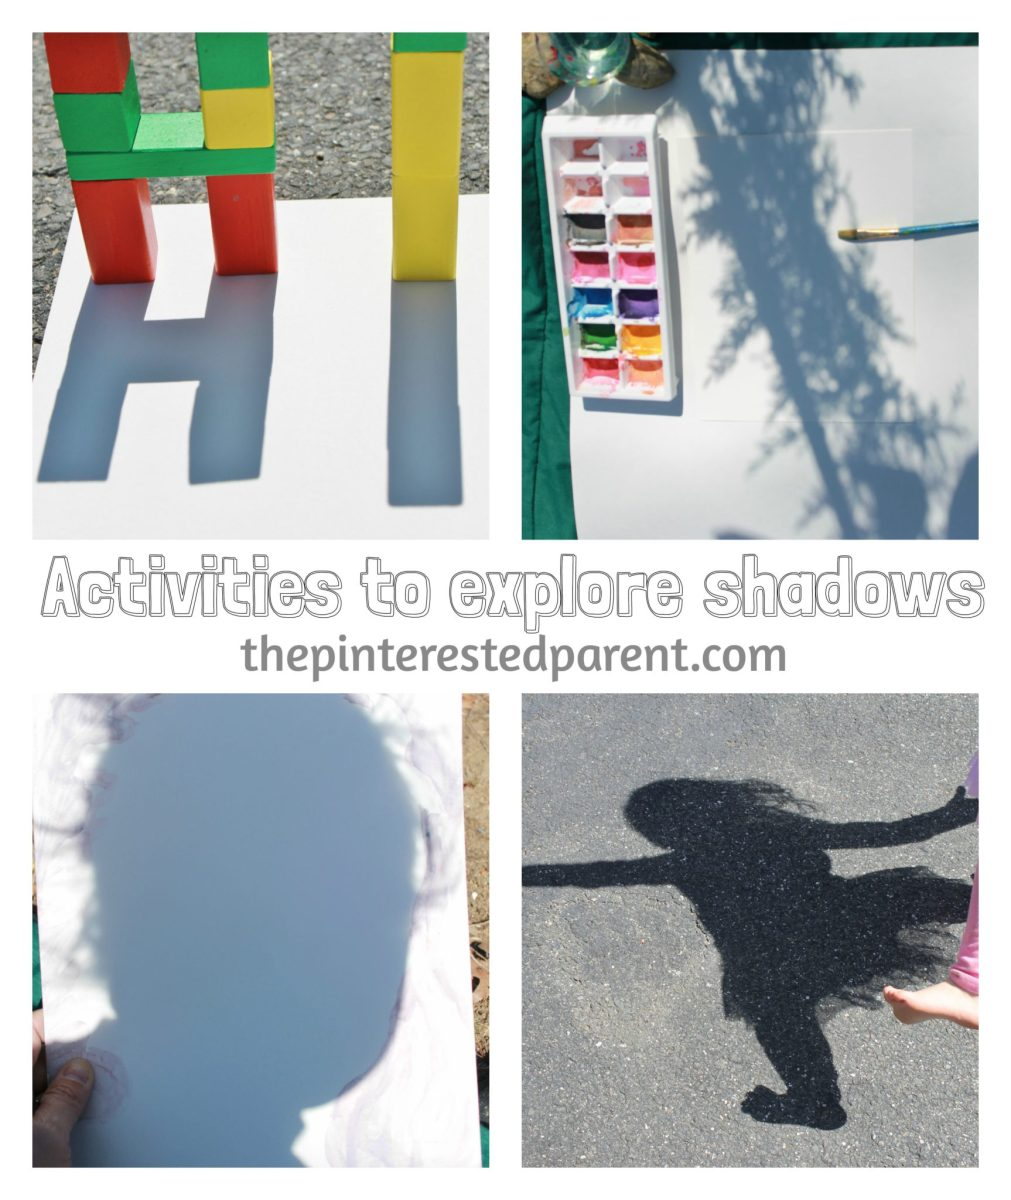 Exploring Shadows